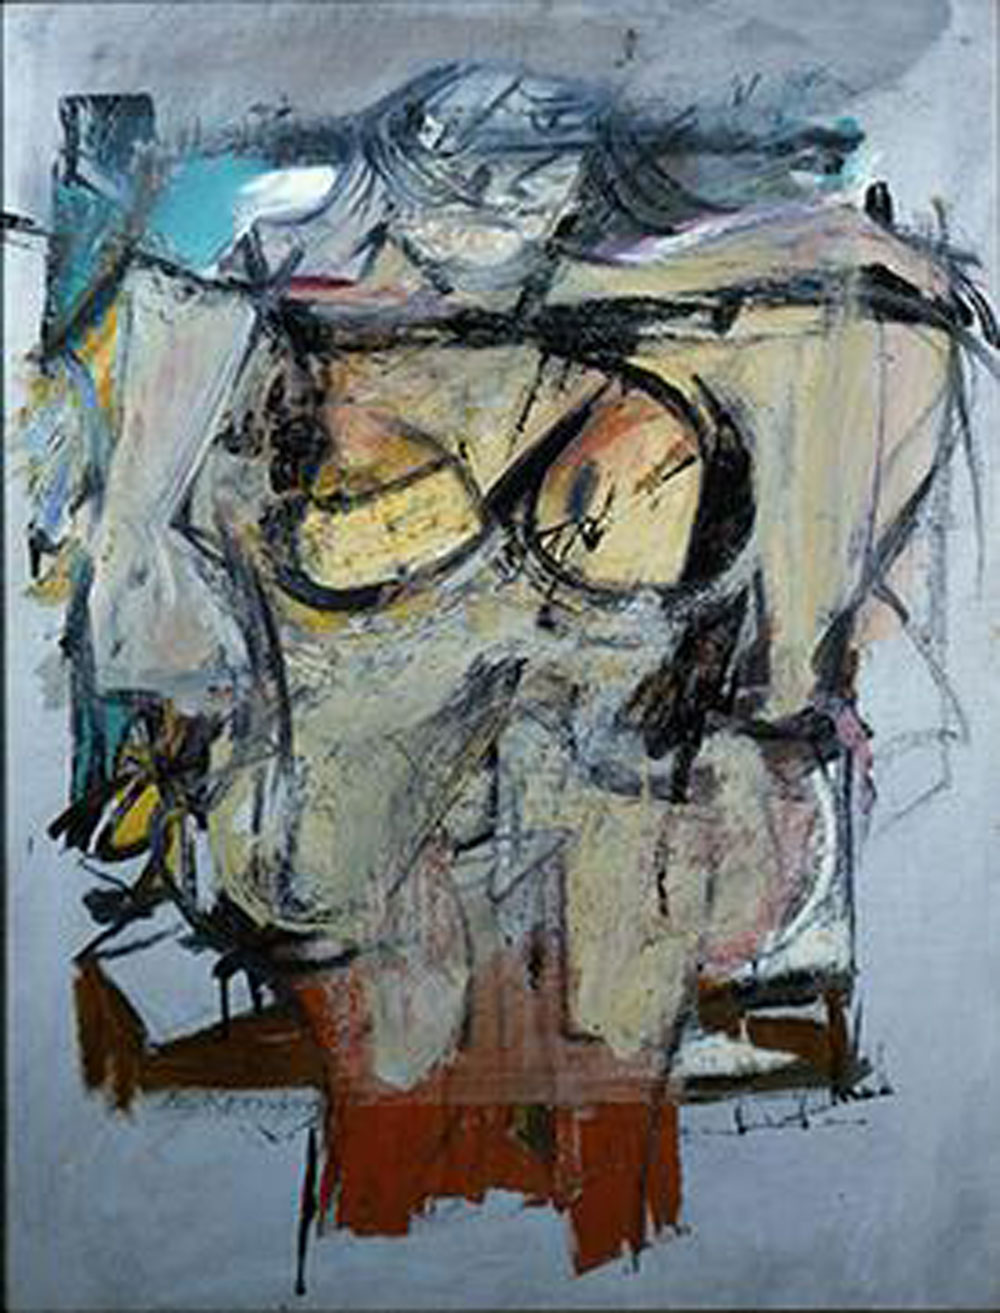 Willem de Kooning: Mujer ocre (1955). Óleo sobre lienzo. University of Arizona Museum of Art.